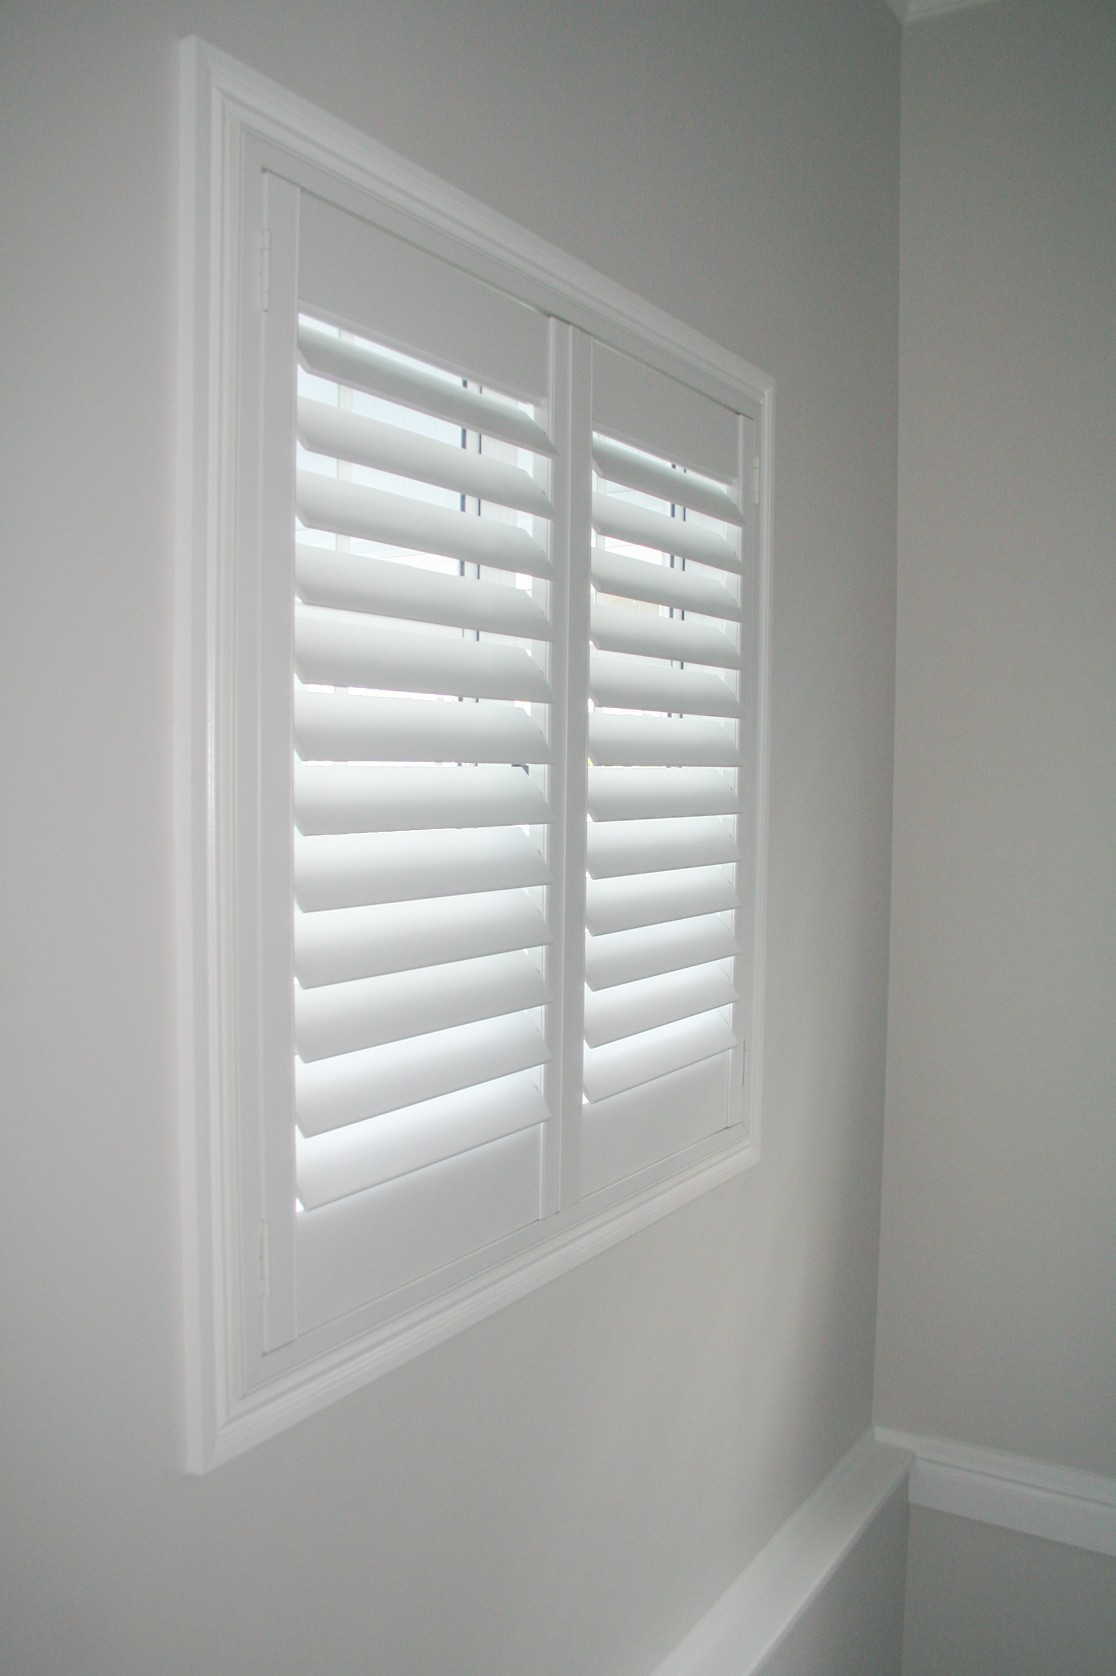 shutters for interior look window graber molding also bedroom design and all bedding white costco modern reviews images paint ganecovillage plantation a crown decorative